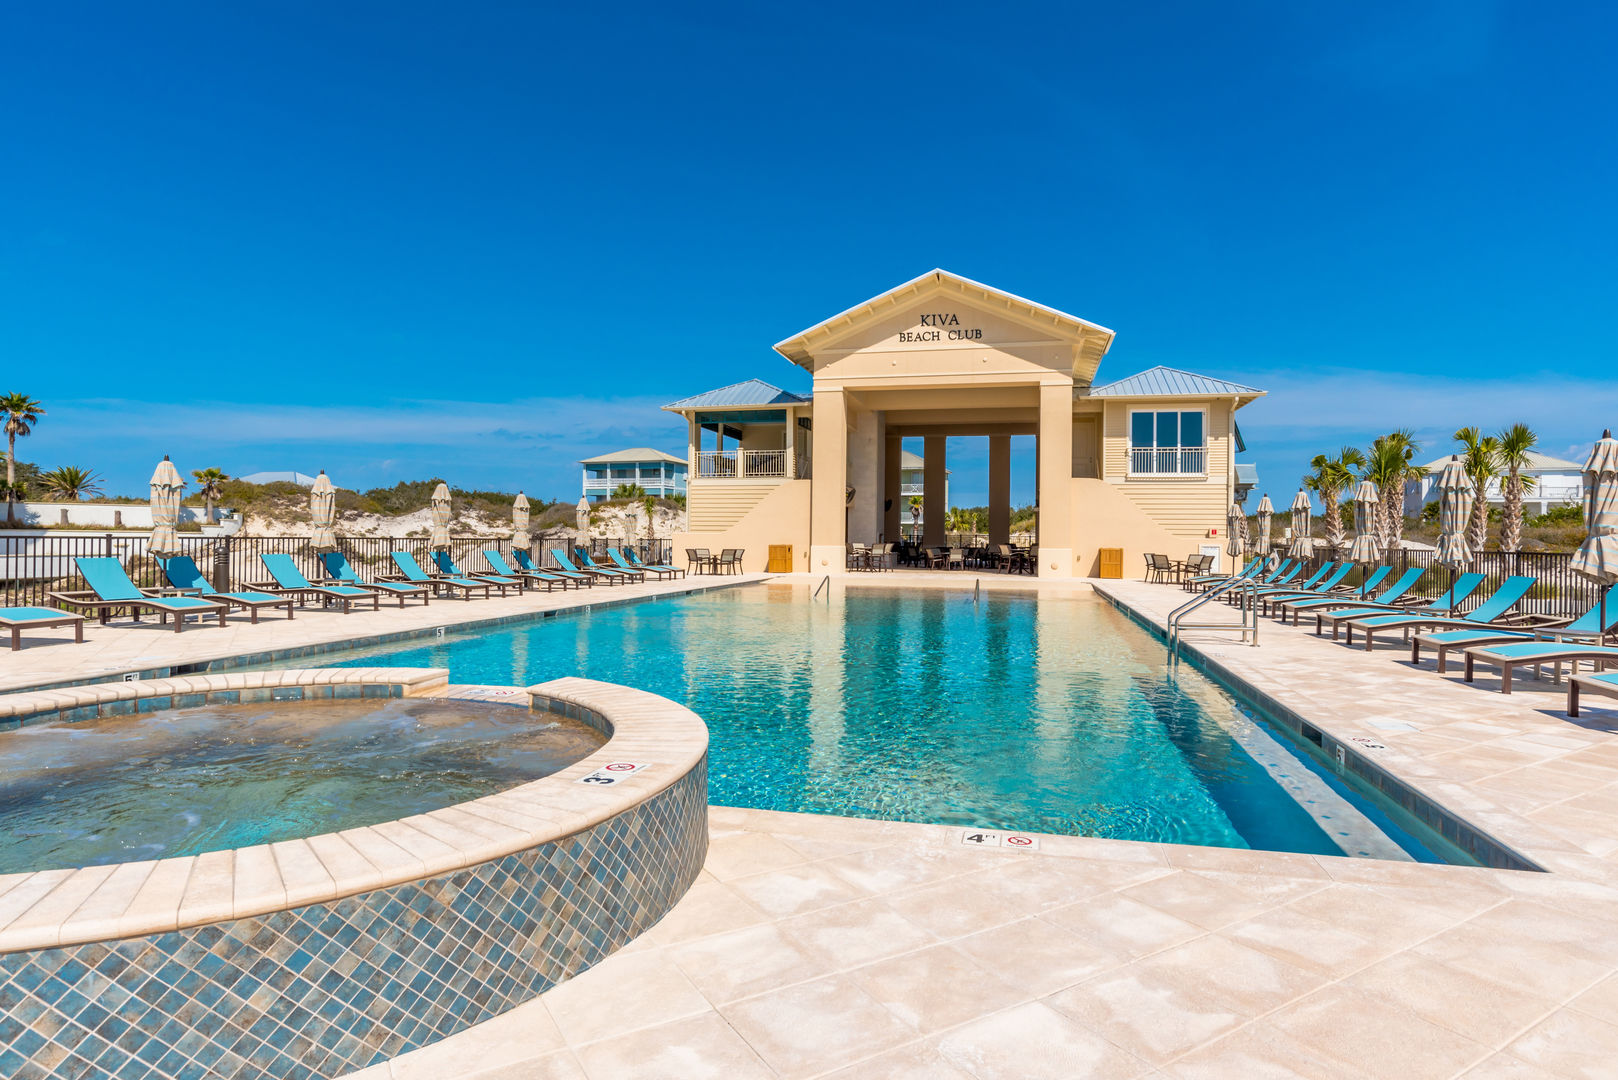 The Pool of the Kiva Beach Club, Lounge Chairs, and Umbrellas.